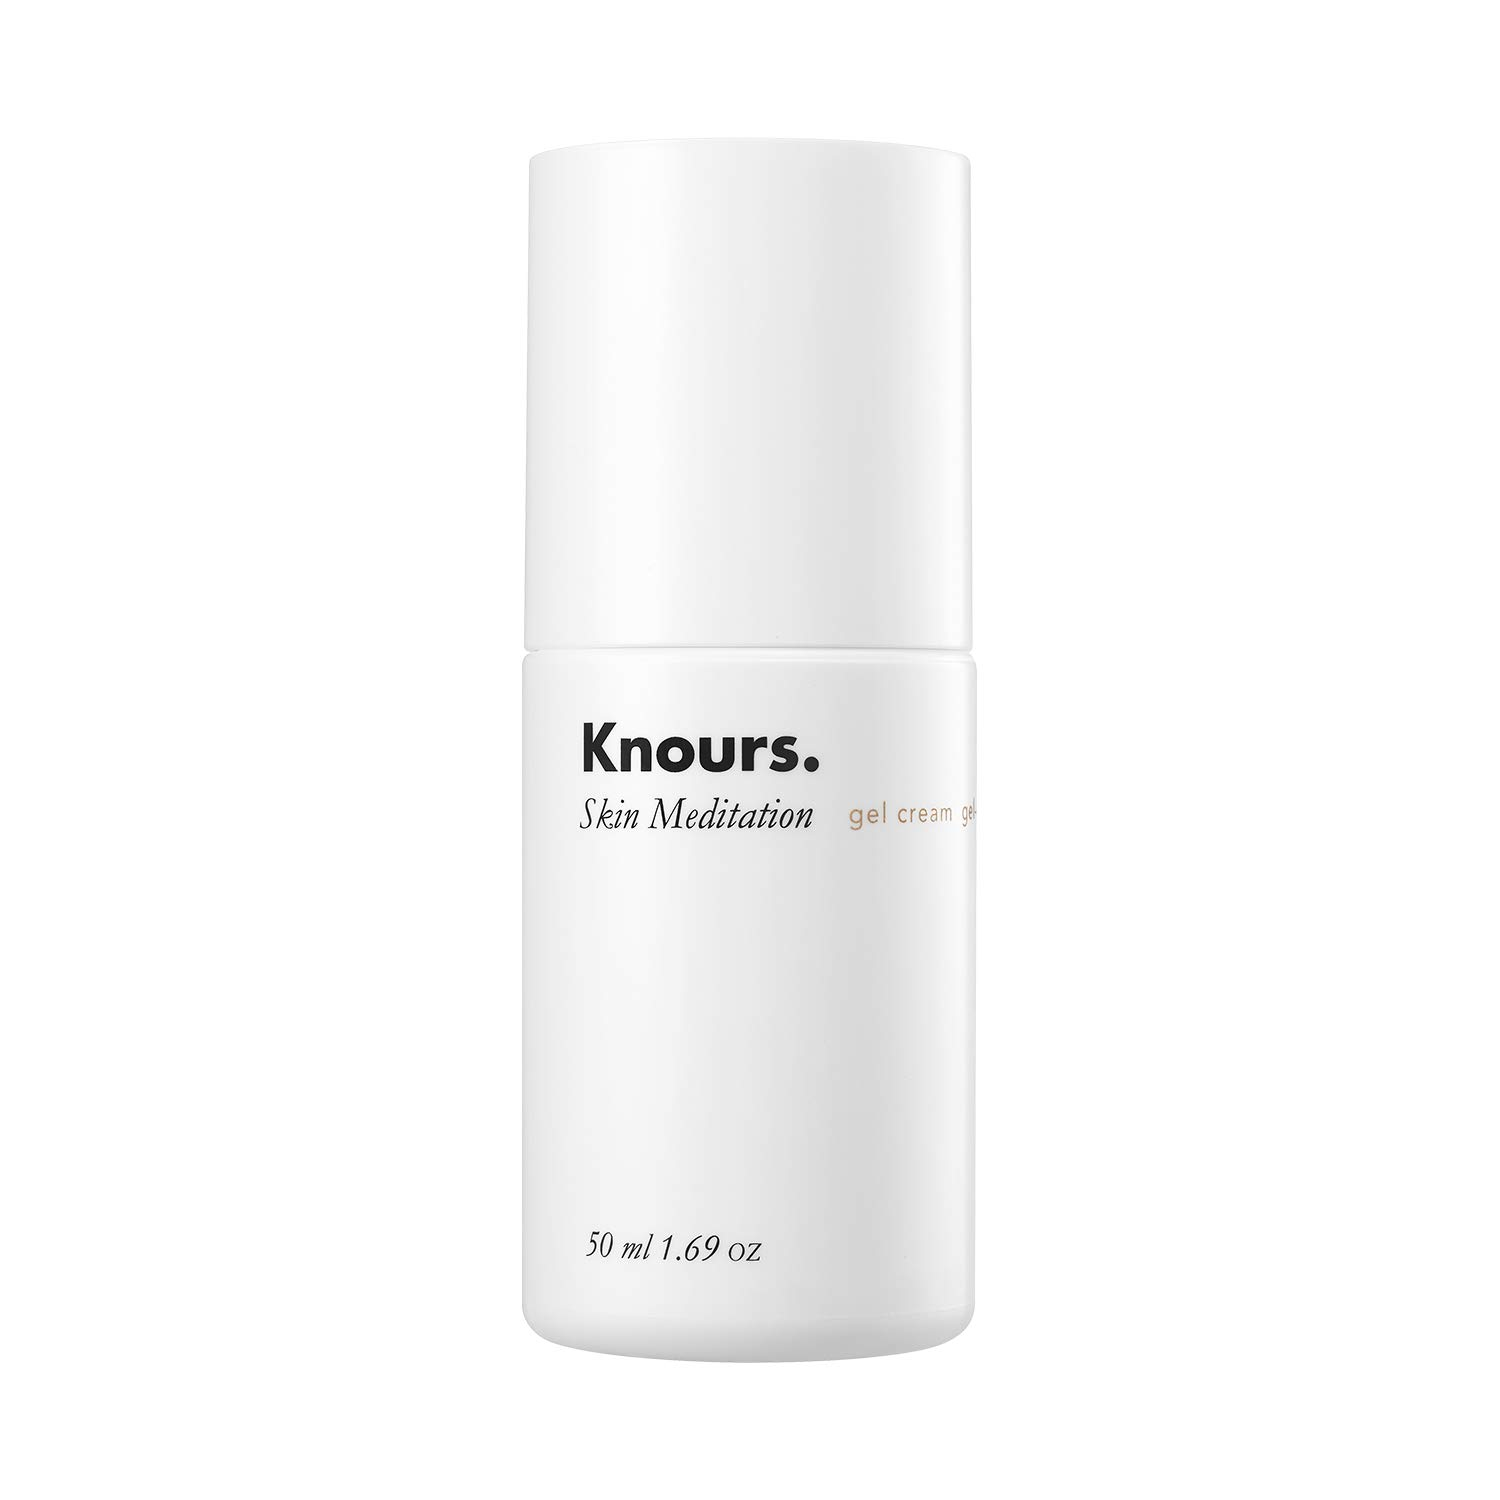 Knours. - Skin Meditation Gel Cream | Natural Lightweight Soothing Hydrating Non-comedogenic Gentle Moisturizer for Sensitive, Oliy and Breakout-prone Skin (50ml/1.69 fl oz.)